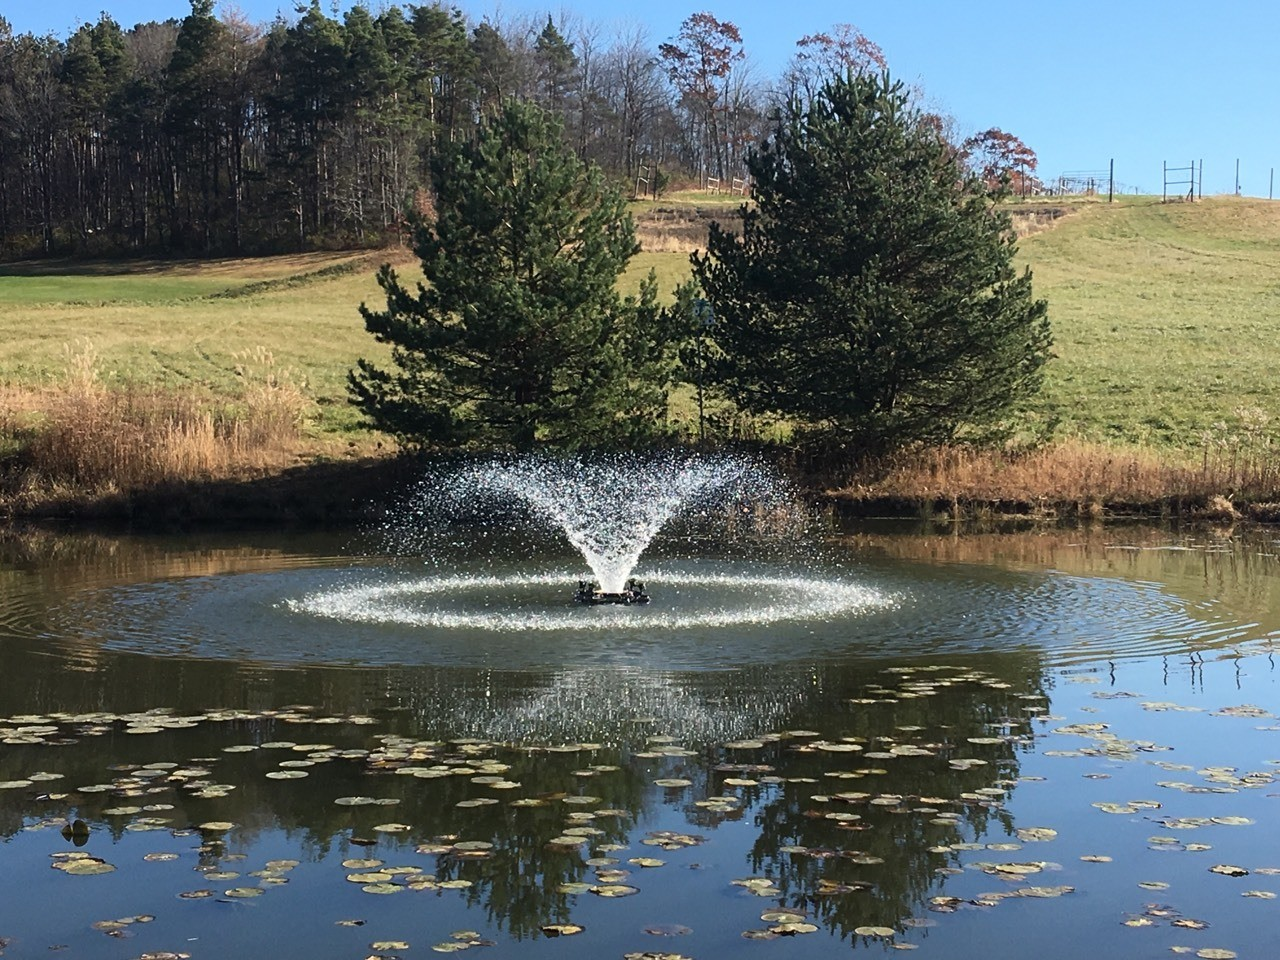 Floating aerating fountain in Uniontown area, Pennsylvania